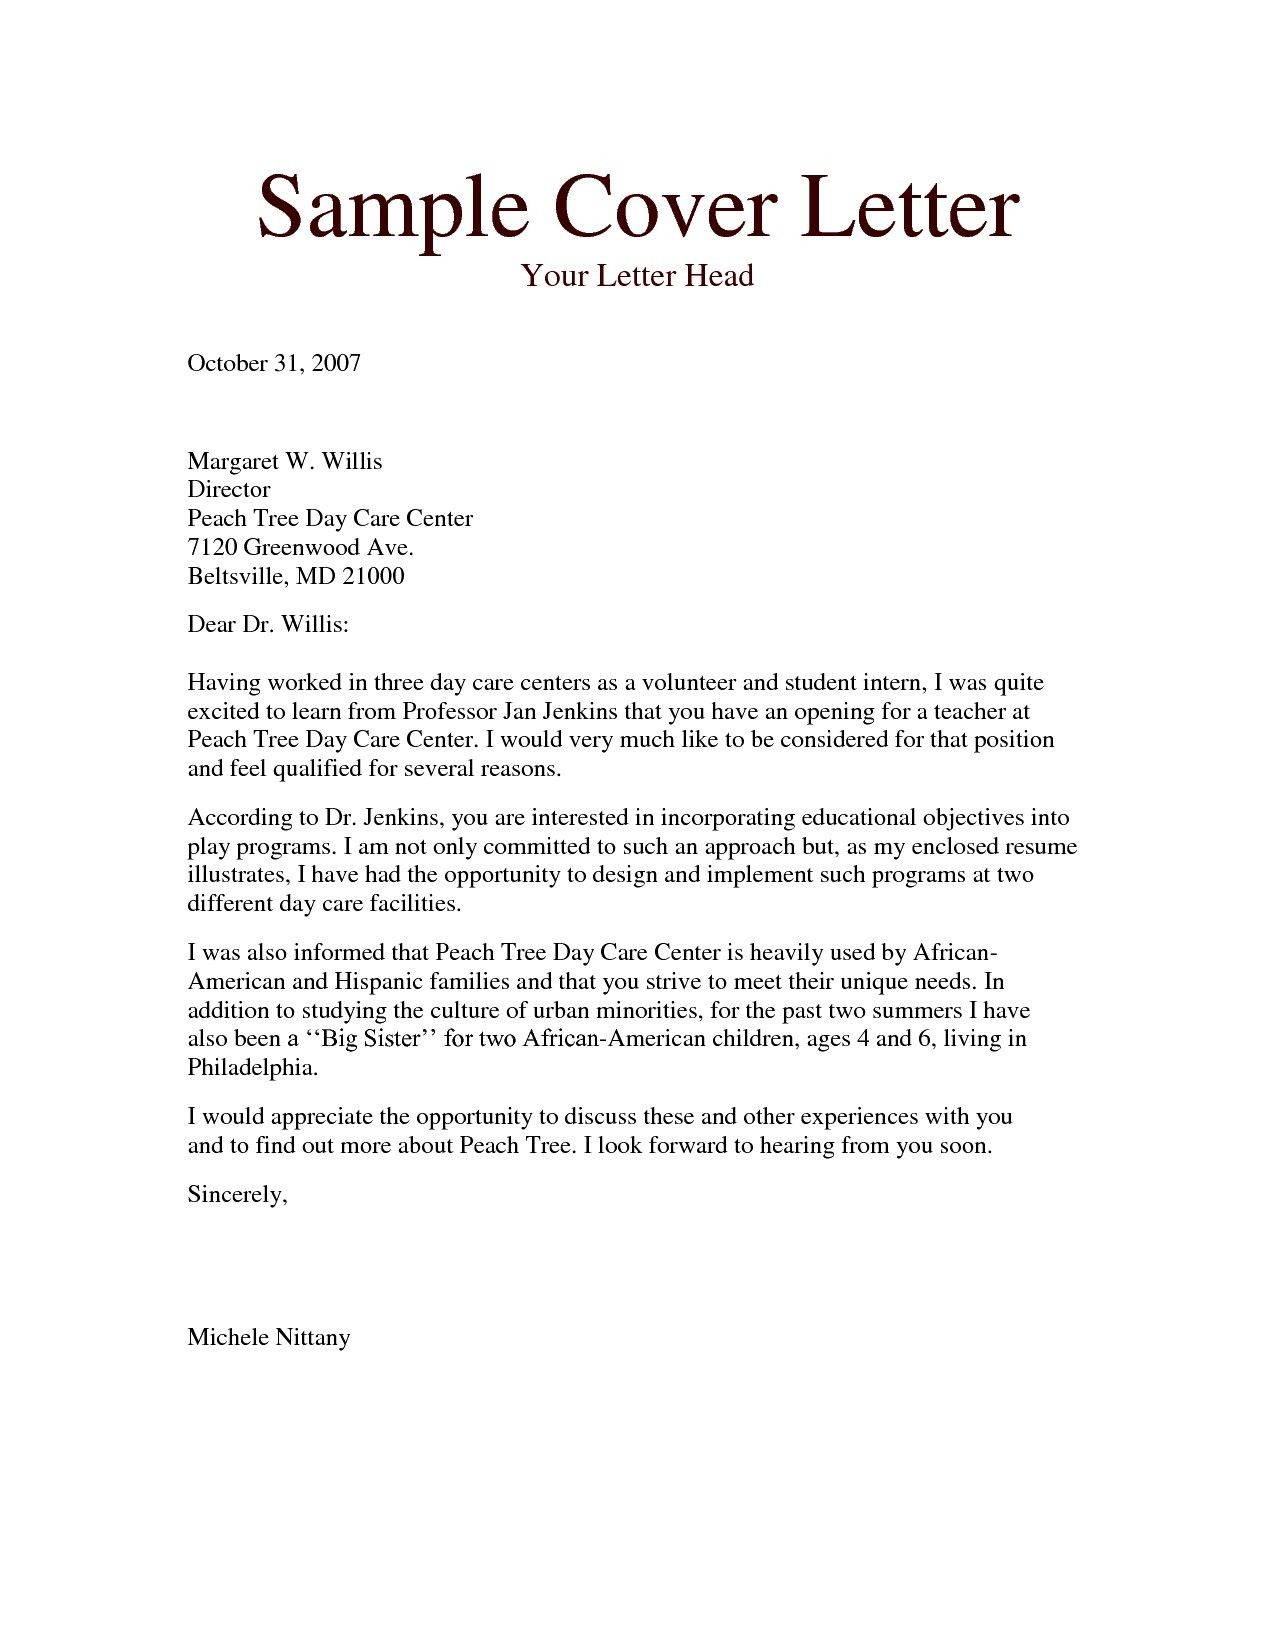 Newscast Director Cover Letter Pin By News Pb On Resume Templates Cover Letter Example Cover